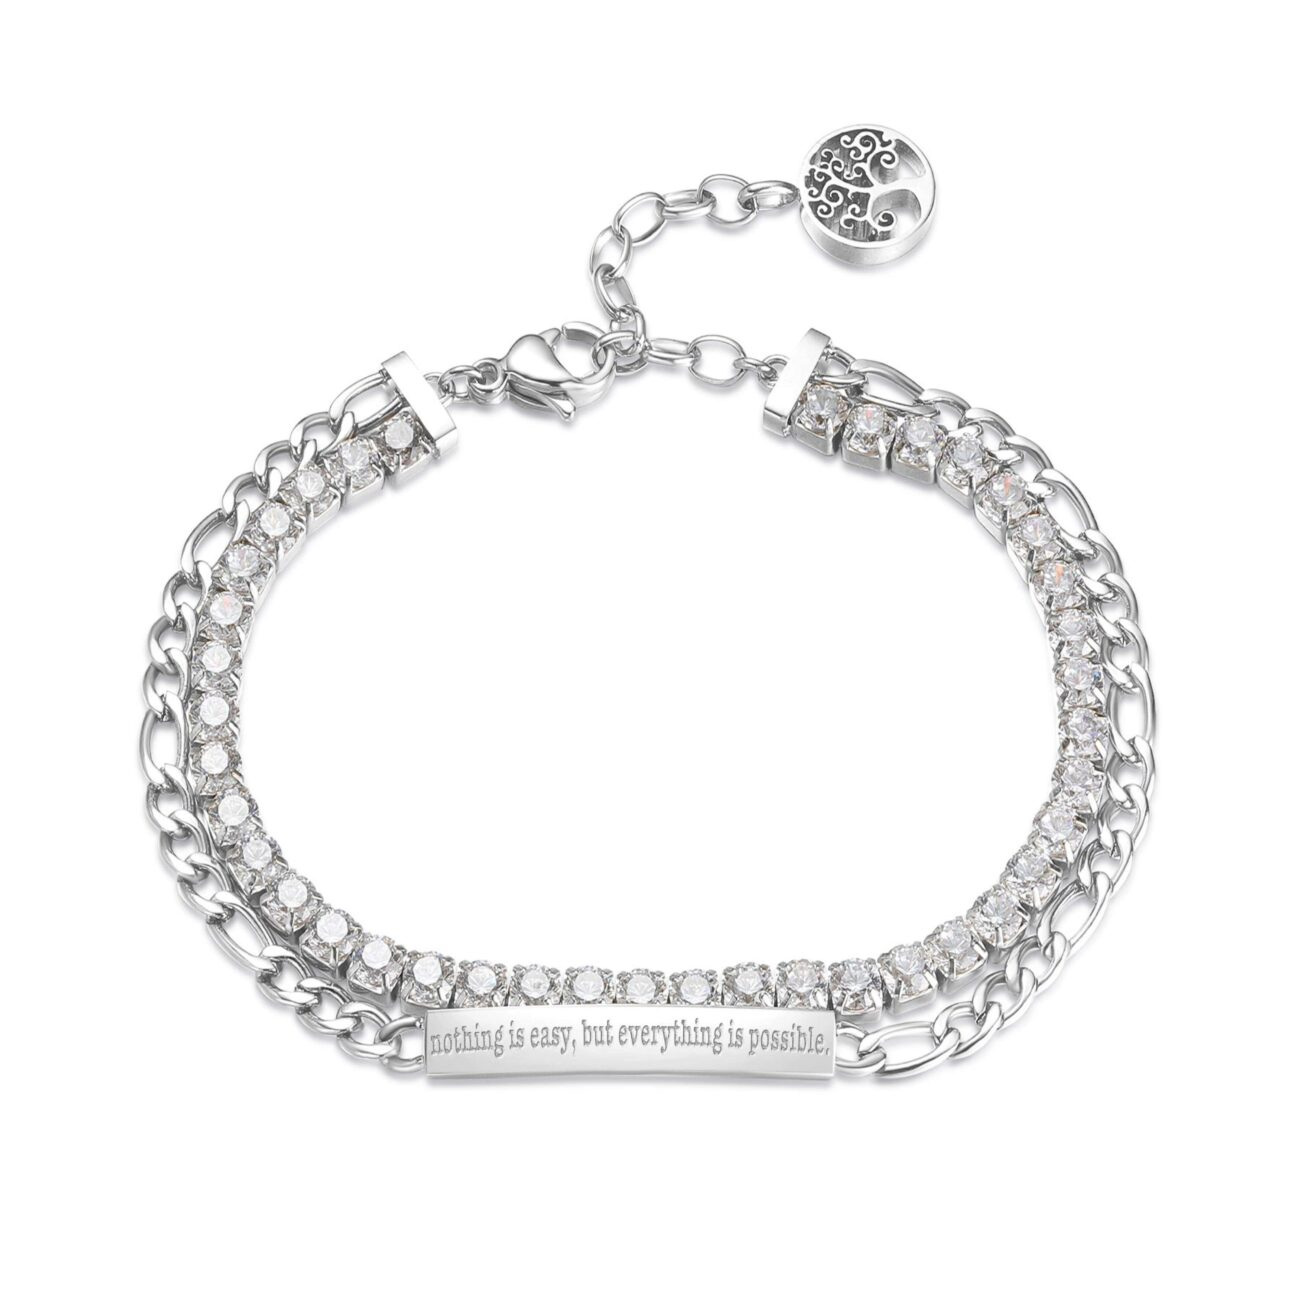 ENGRAVED: Nothing is easy, but everything is possible (front) 304 stainless steel double tennis bracelet with white cubic zirconia and bar.